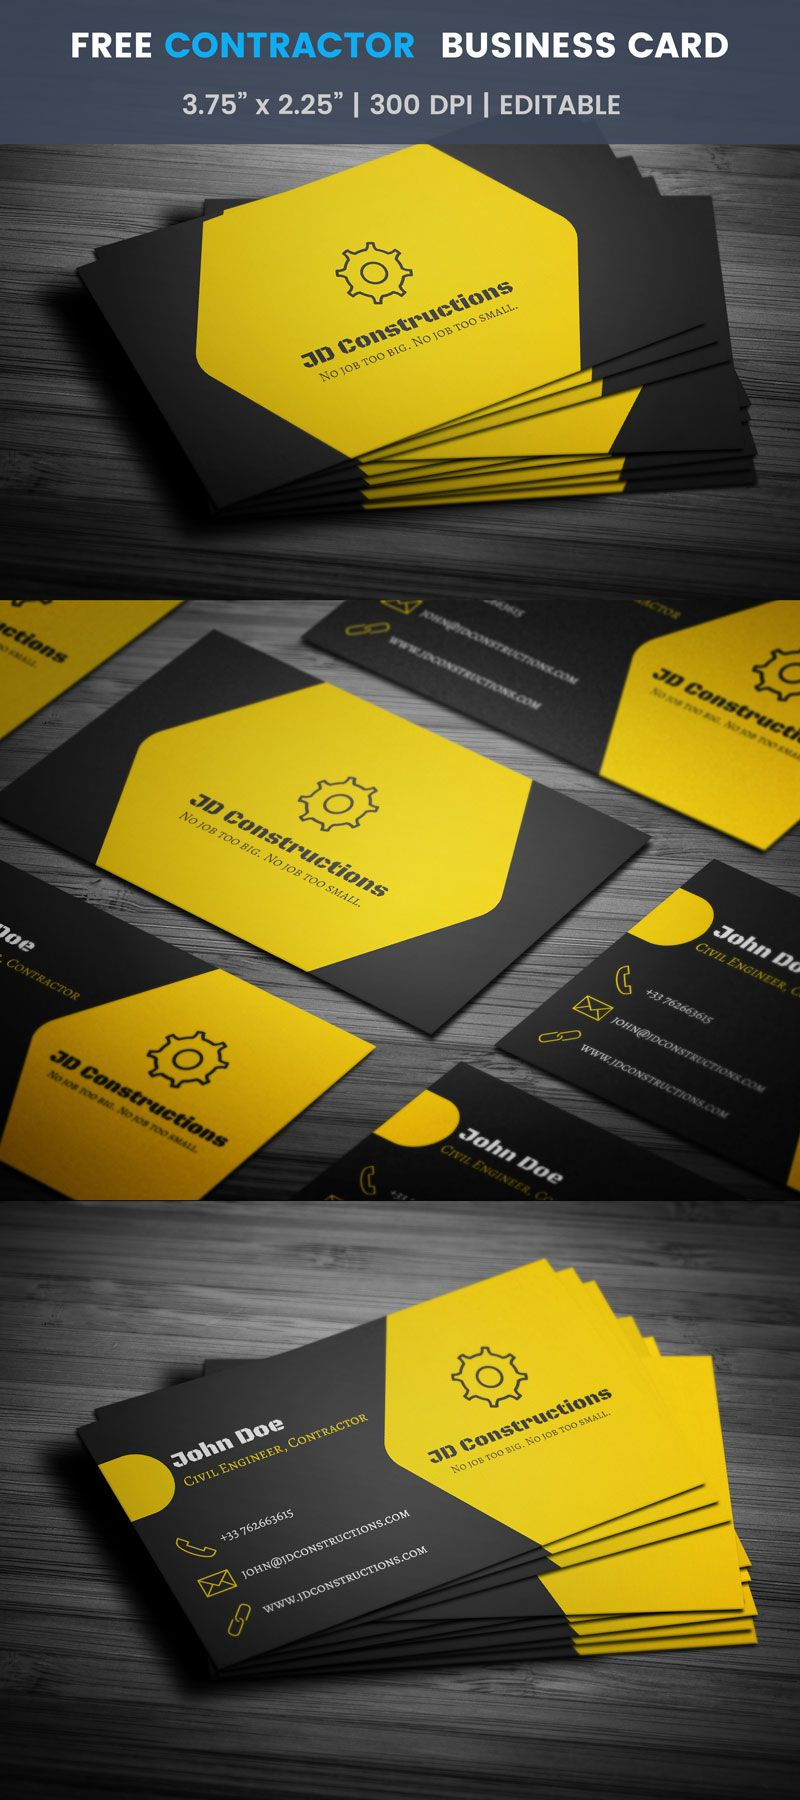 Civil engineer and contractor business card full preview free civil engineer and contractor business card full preview wajeb